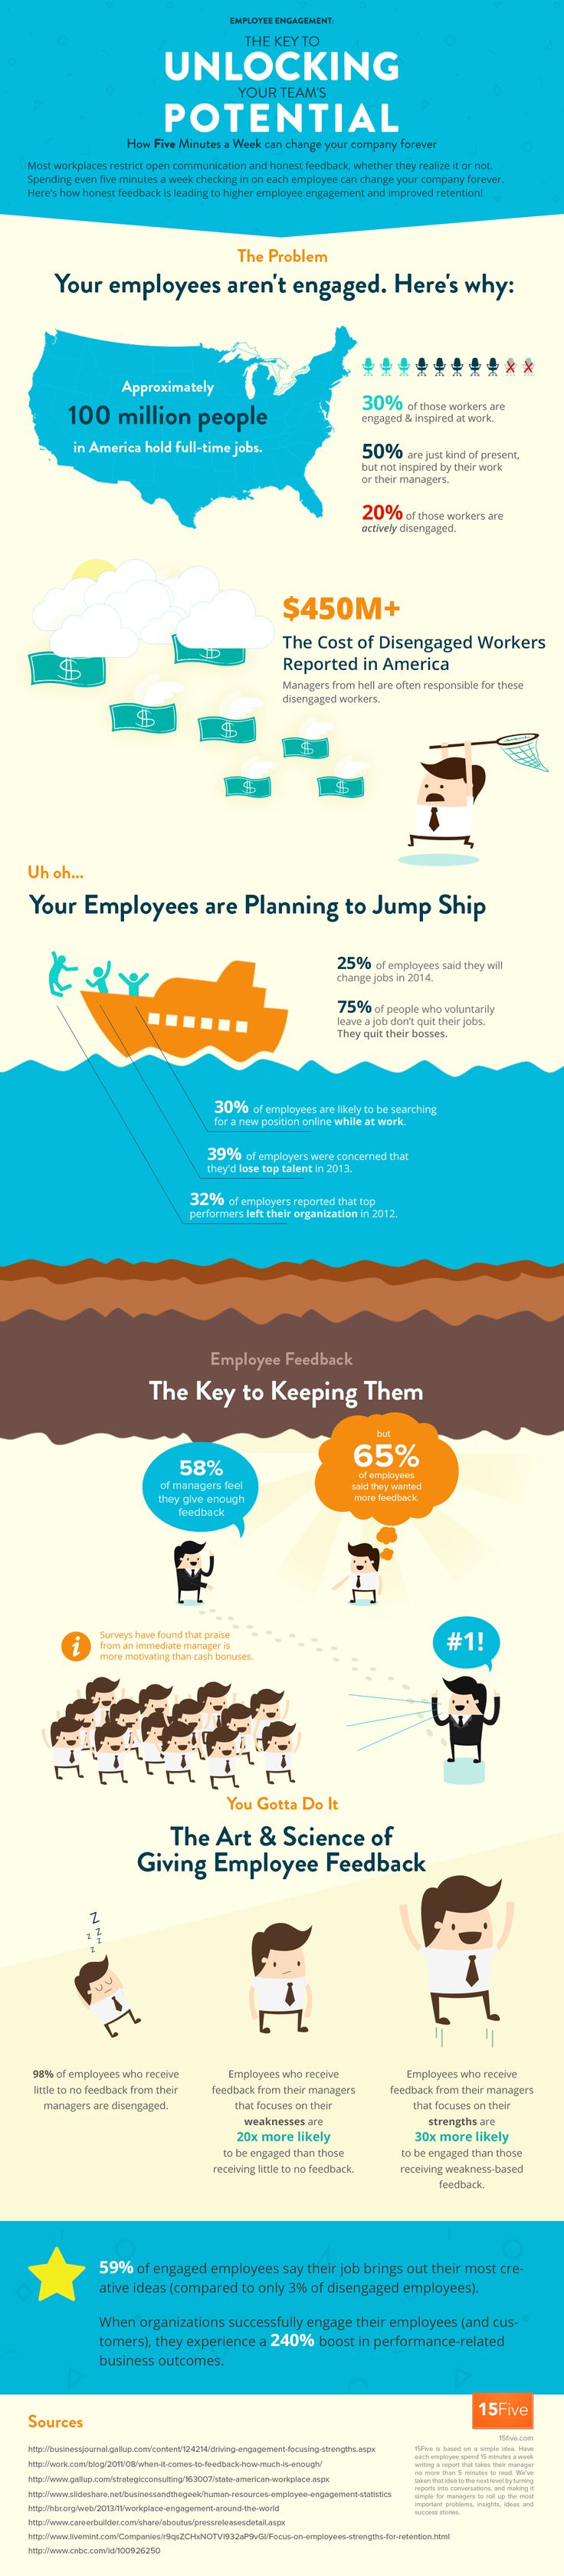 Pin by TribalCafe on Social Business Infographics | Pinterest